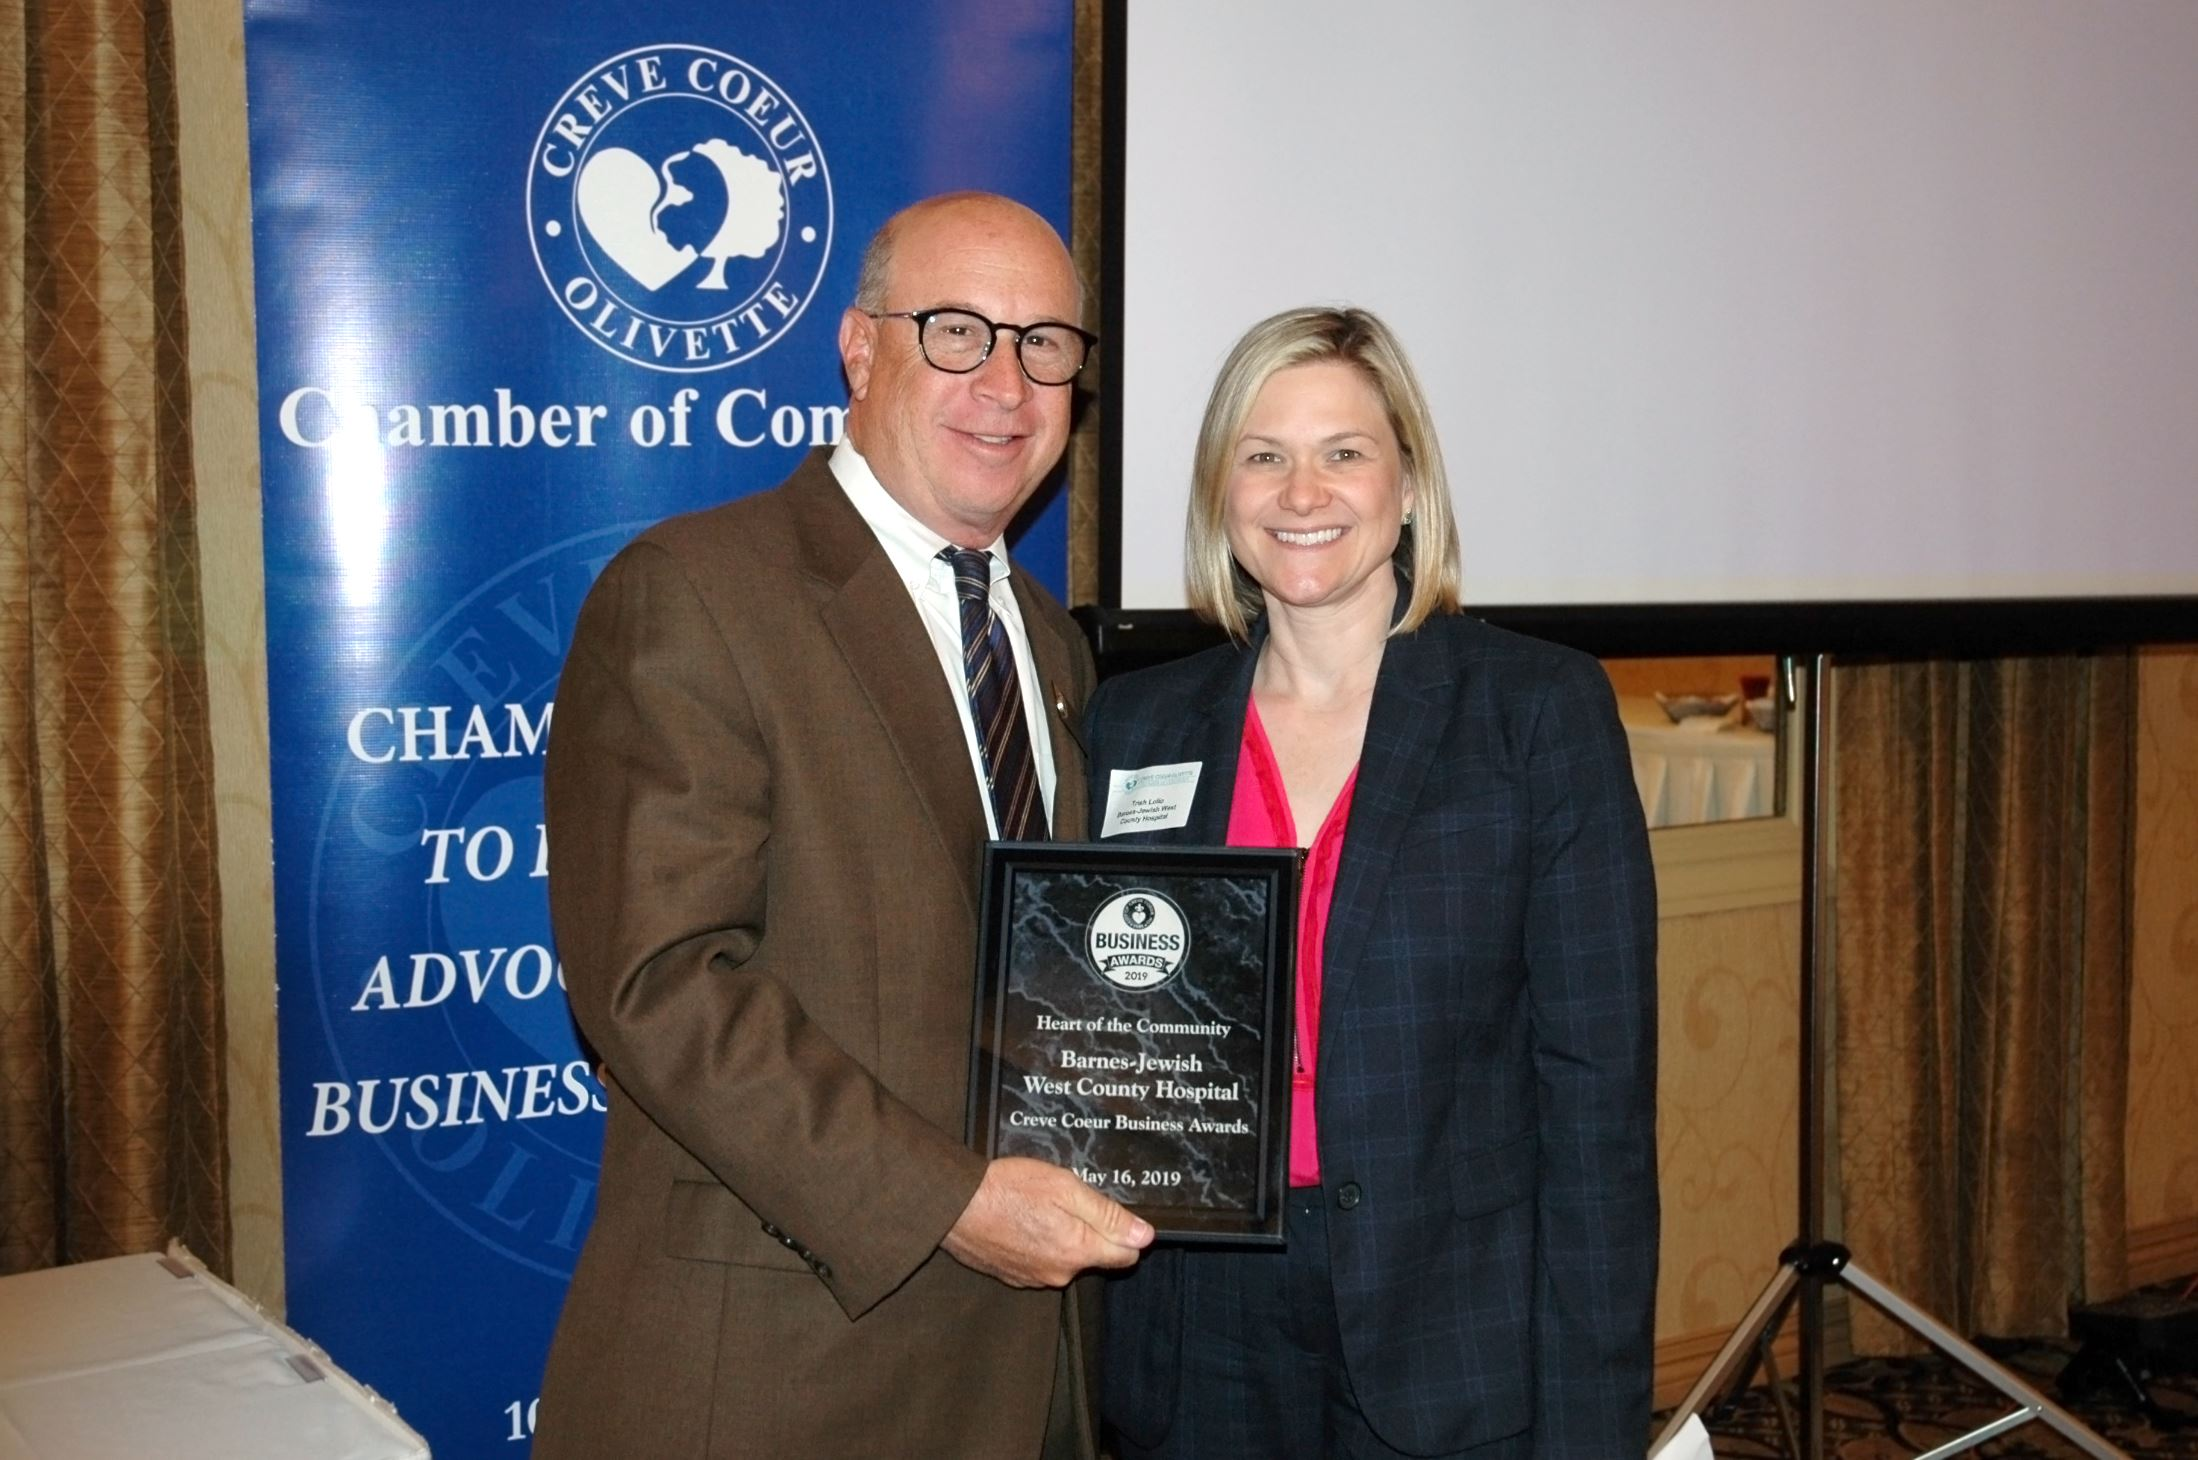 Heart of the Community Business Award Winner 2019